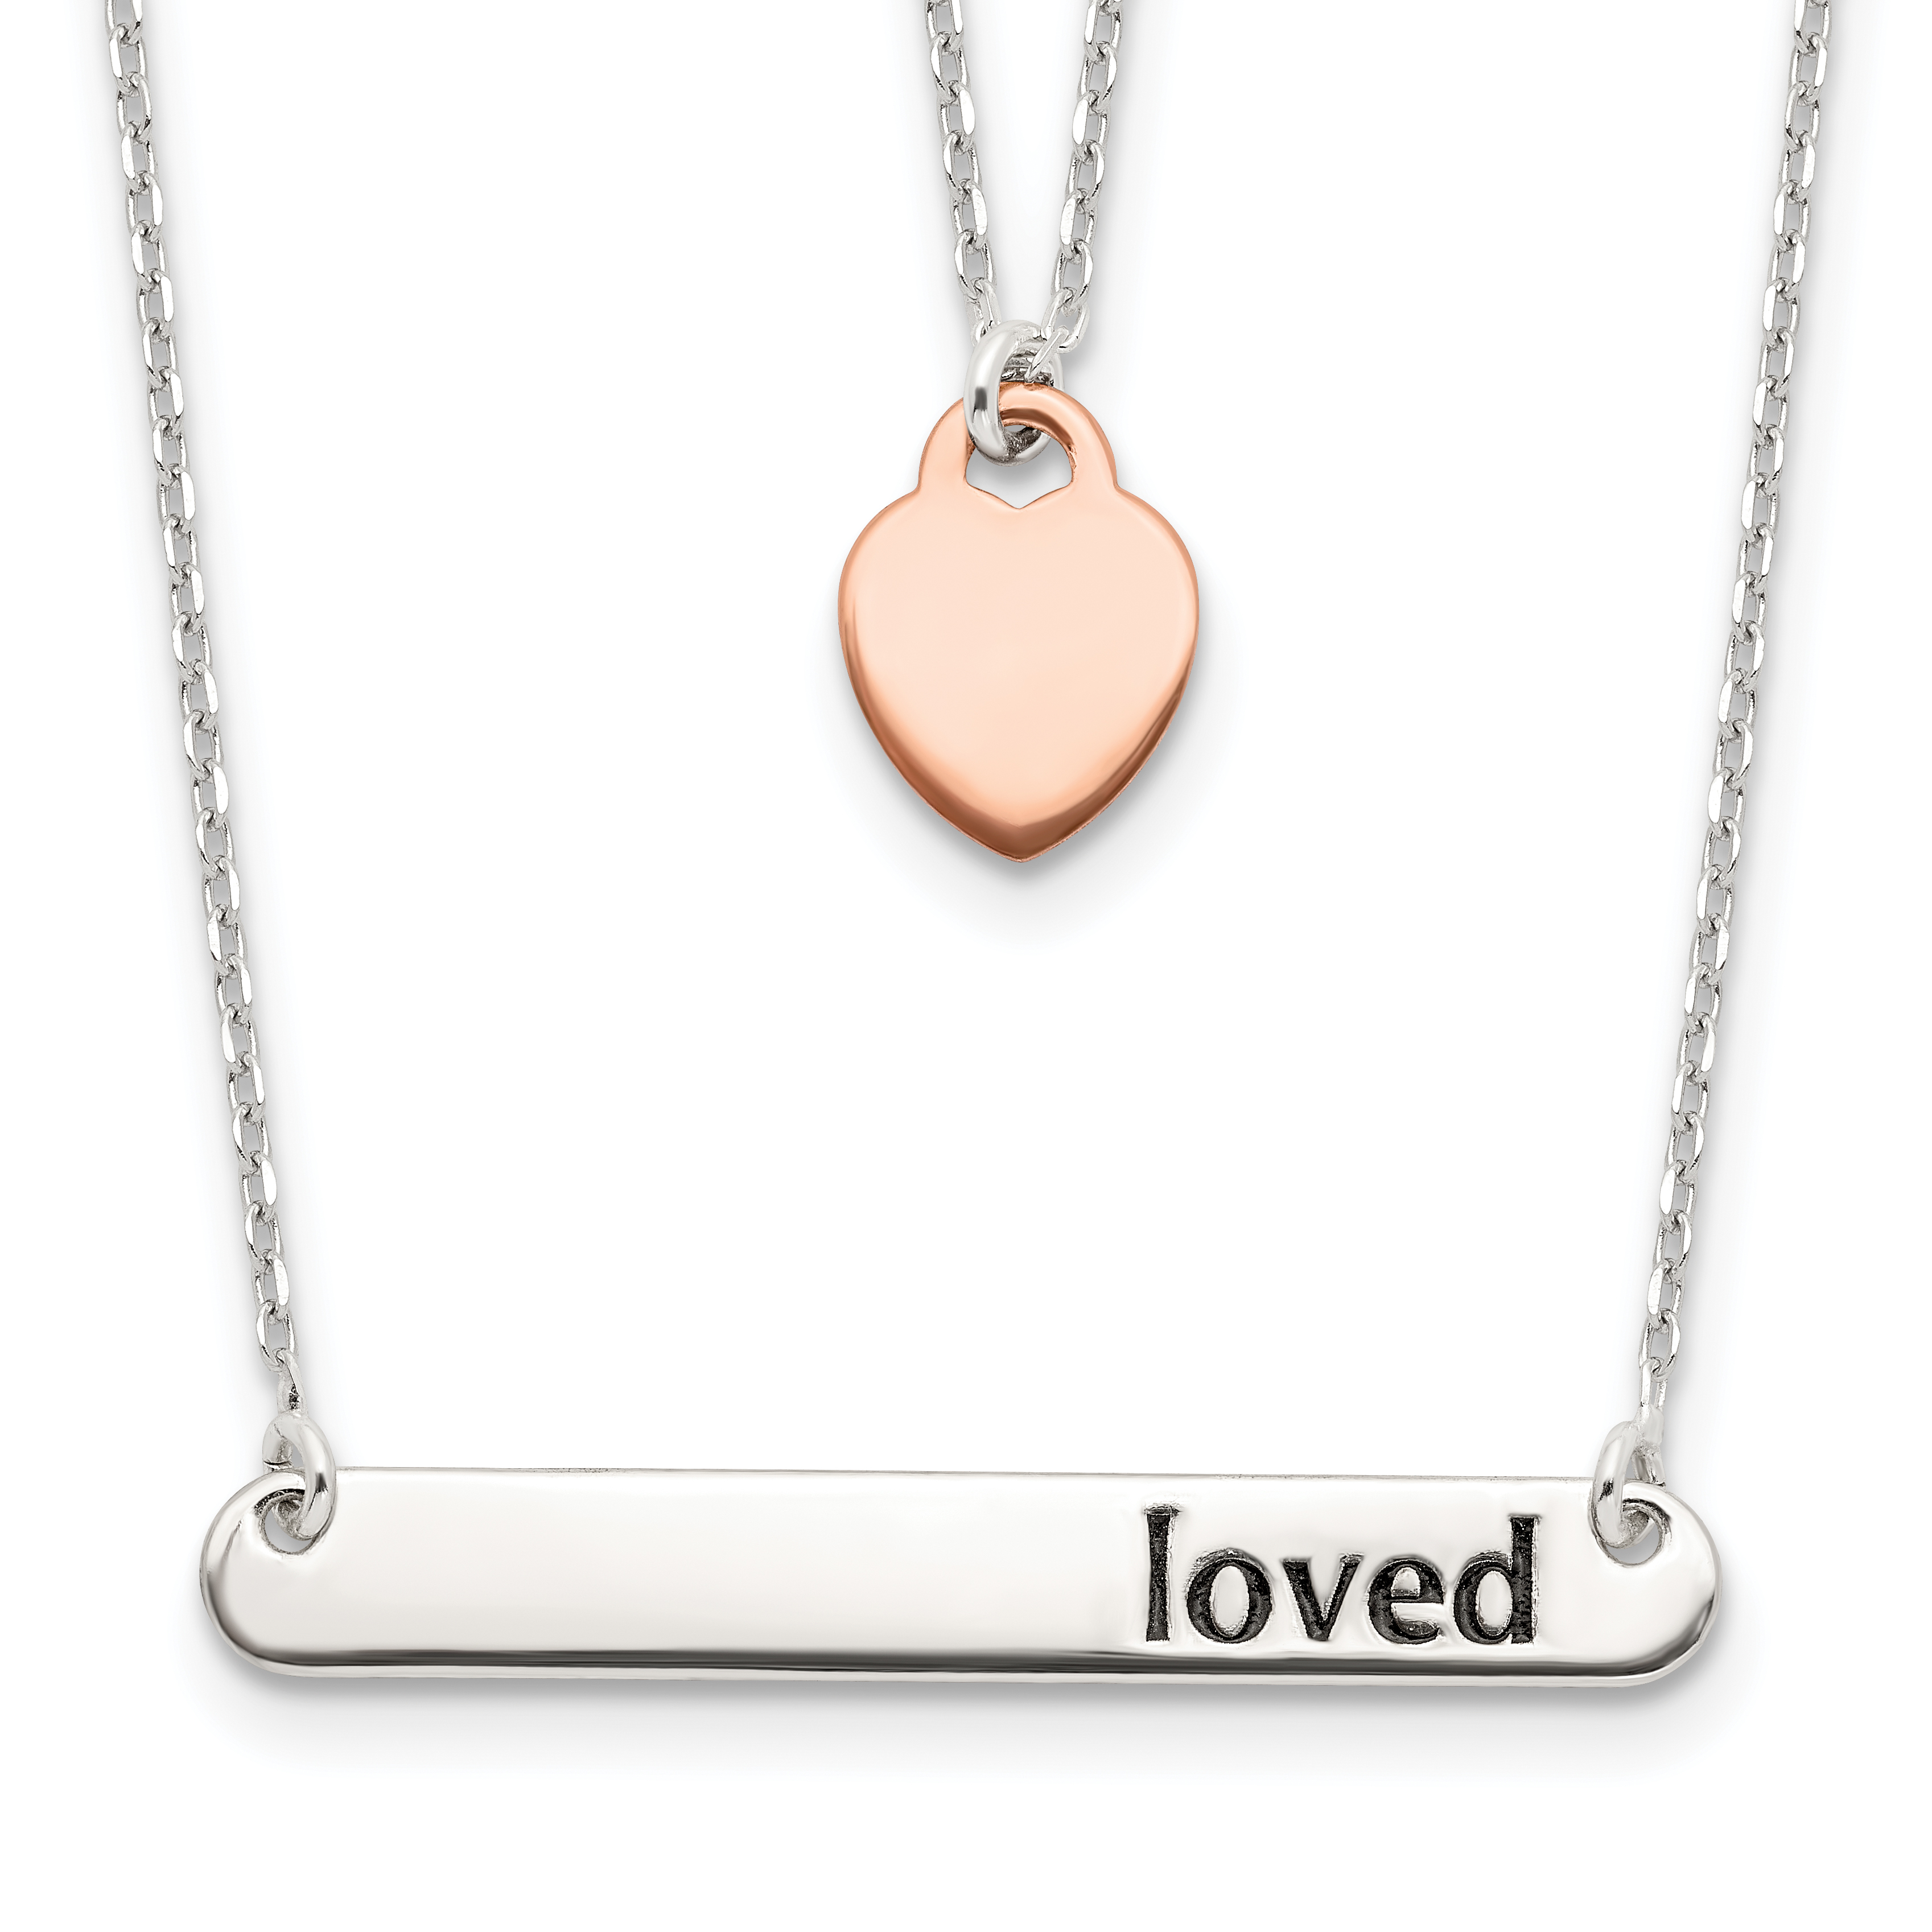 Sterling Silver Rose-tone Heart & Enameled Loved 18in Bar Necklace   Weight: 3.25 grams, Length: 16mm, Width: 1.02mm